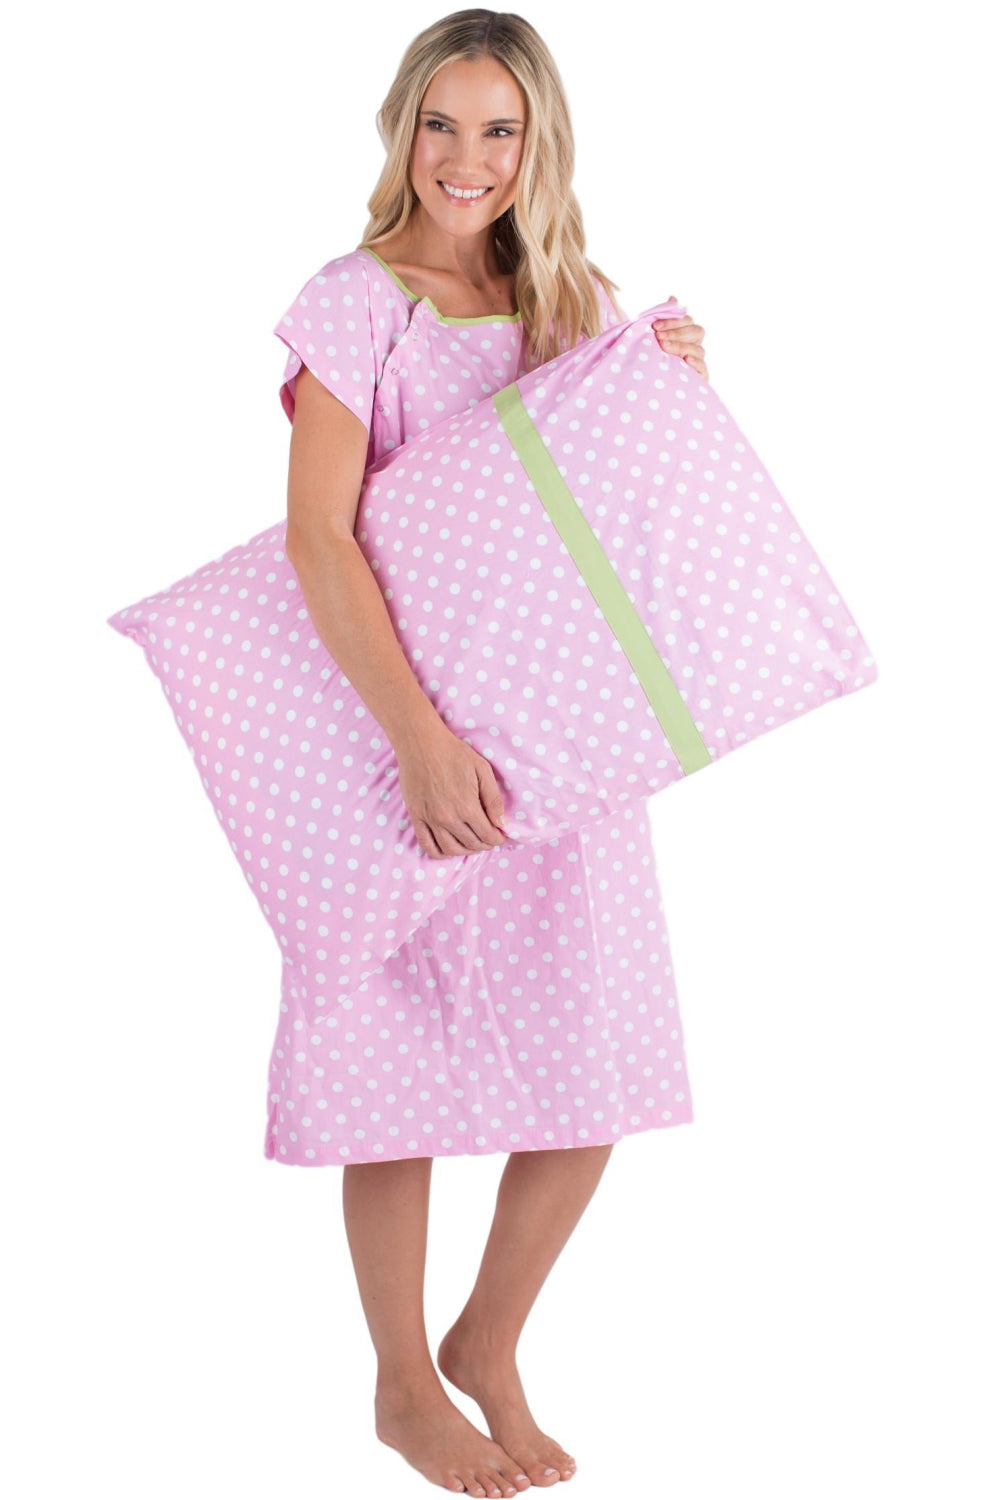 1d8a1671f1d Molly Gownie   Pillowcase Set Maternity Delivery Labor Hospital Gown Pink  Dotted